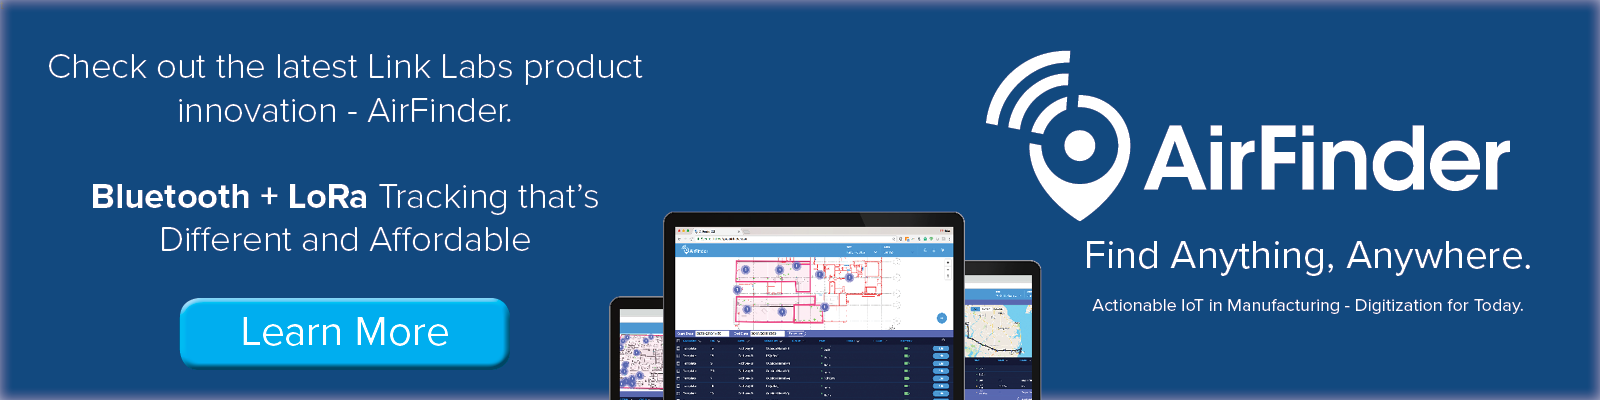 AirFinder CTA for LL